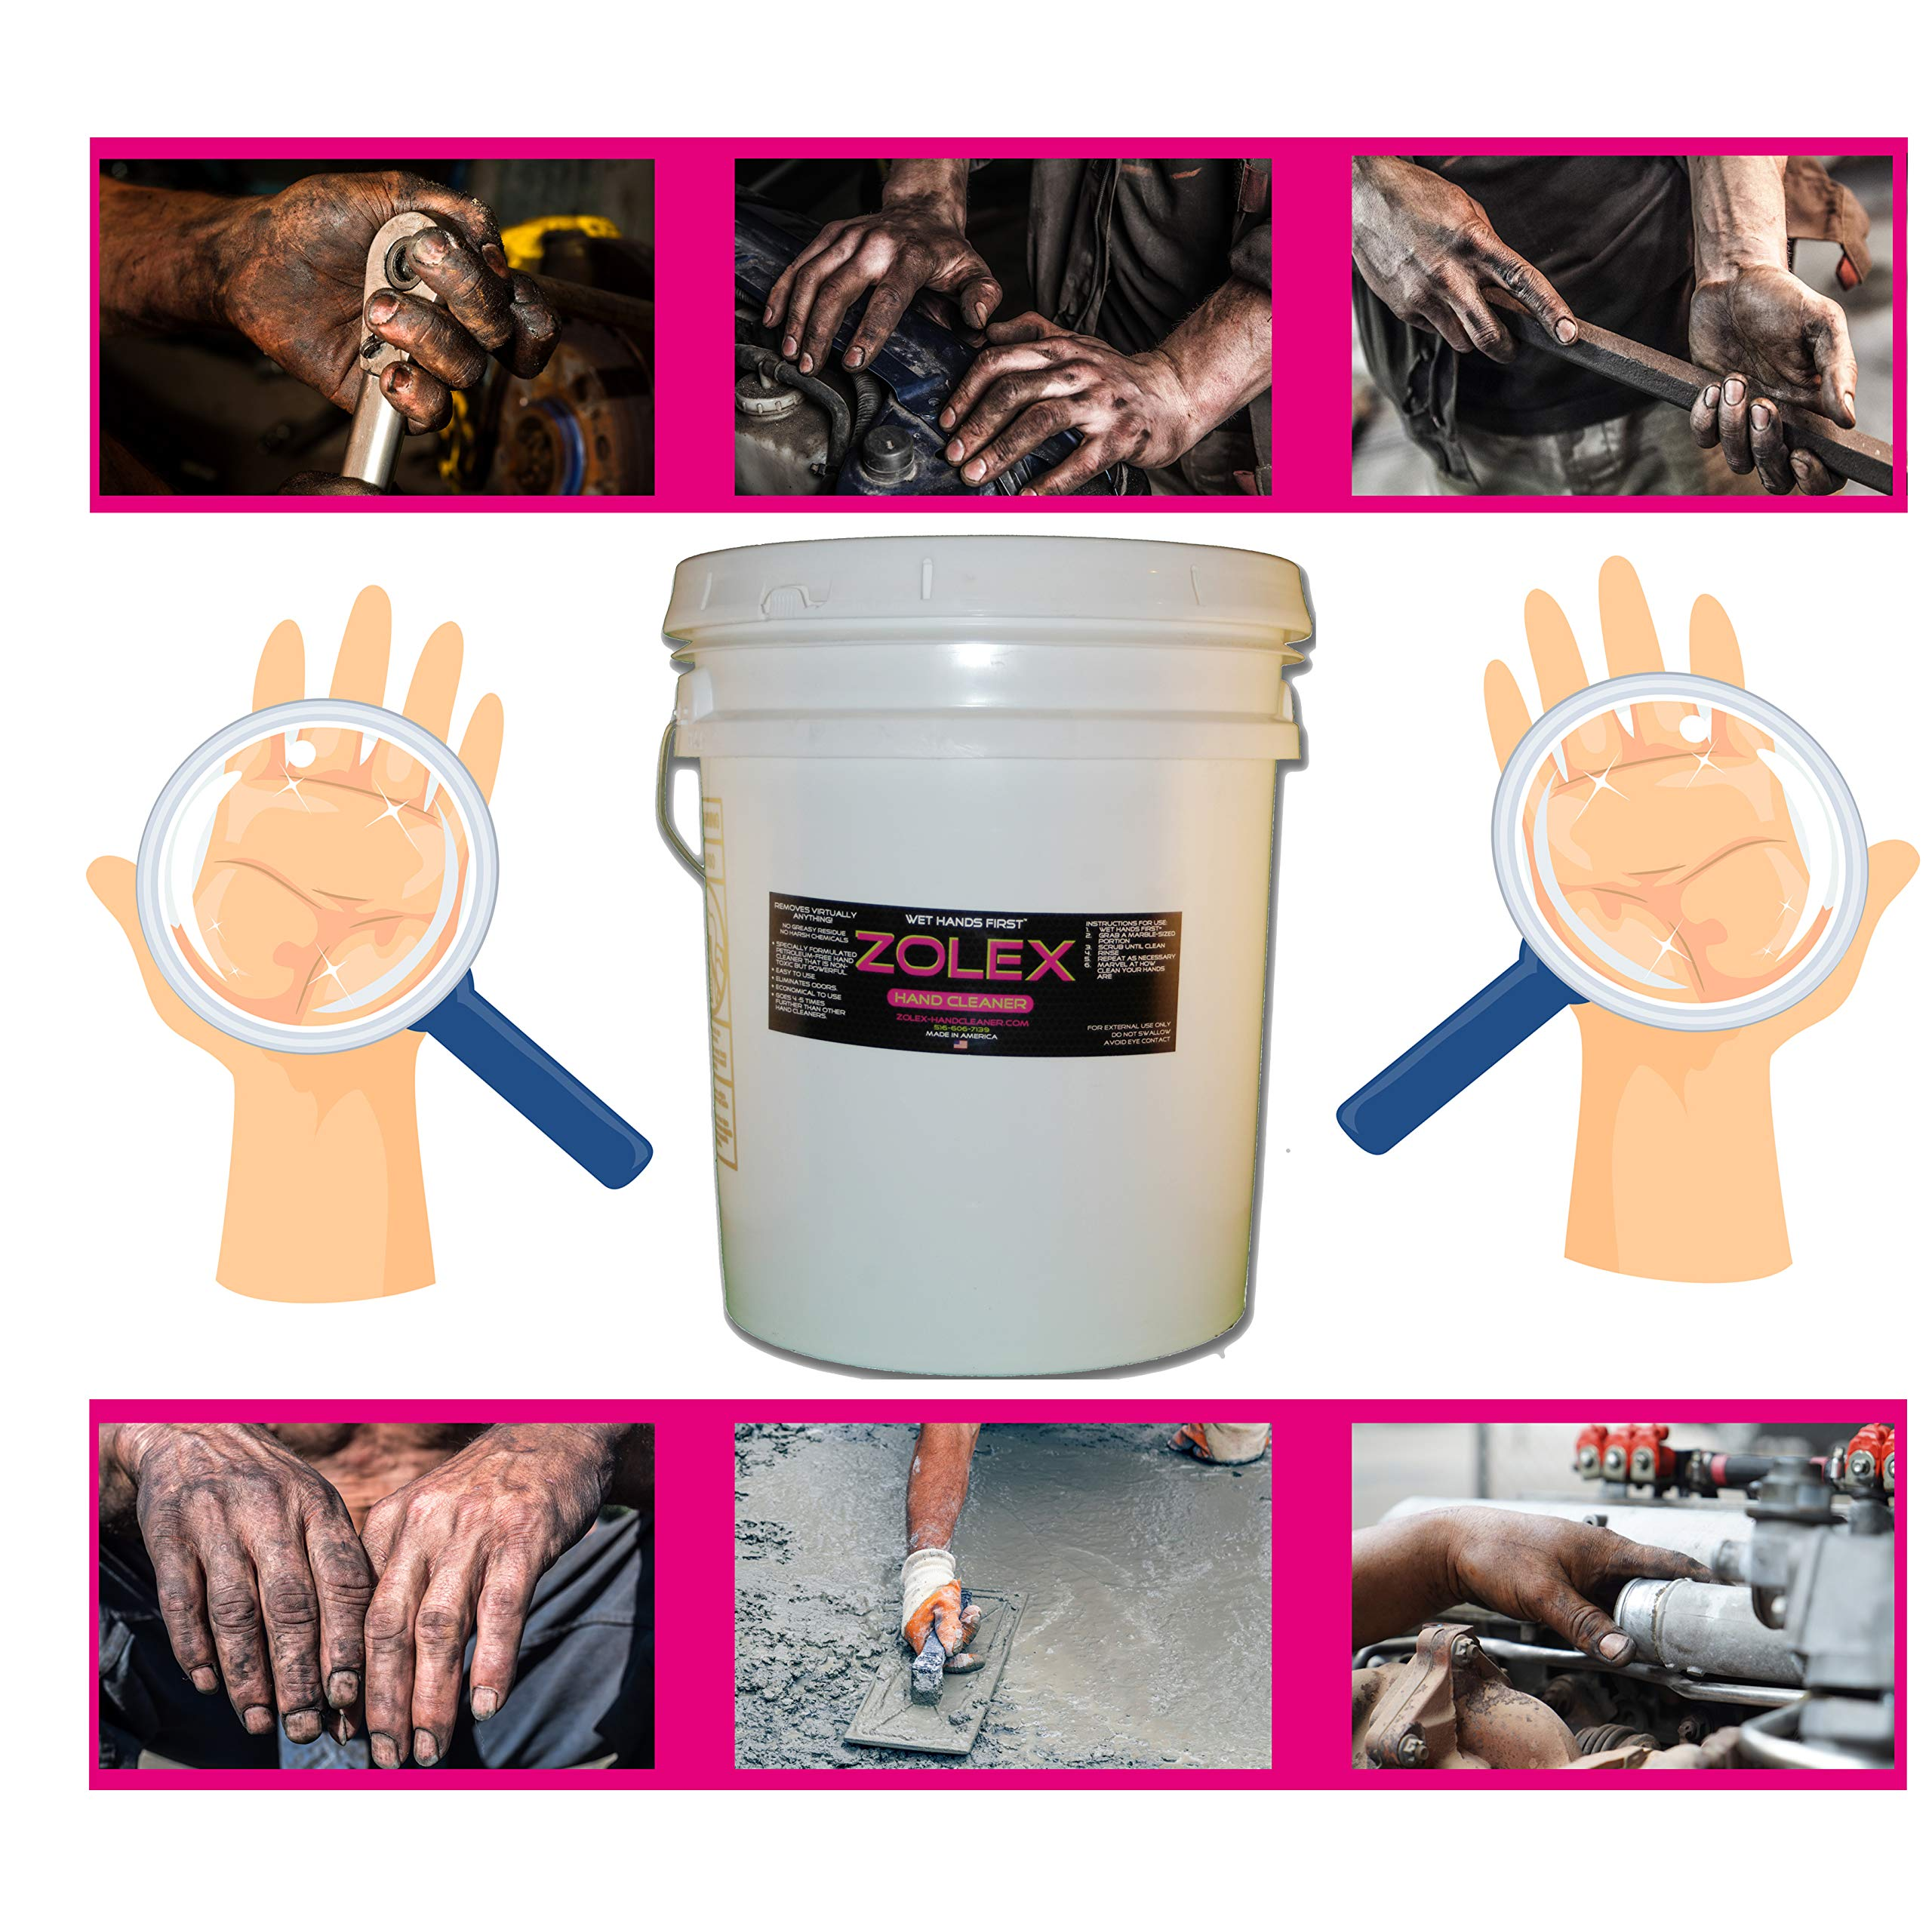 Zolex Water Activated Hand Cleaner for Working Hands| Stain Remover for Heavy Duty Workers | Grease Remover for Auto Mechanics - Non-Toxic Petroleum Free | Commercial-Sized Pail (25 lb) by Zolex (Image #2)